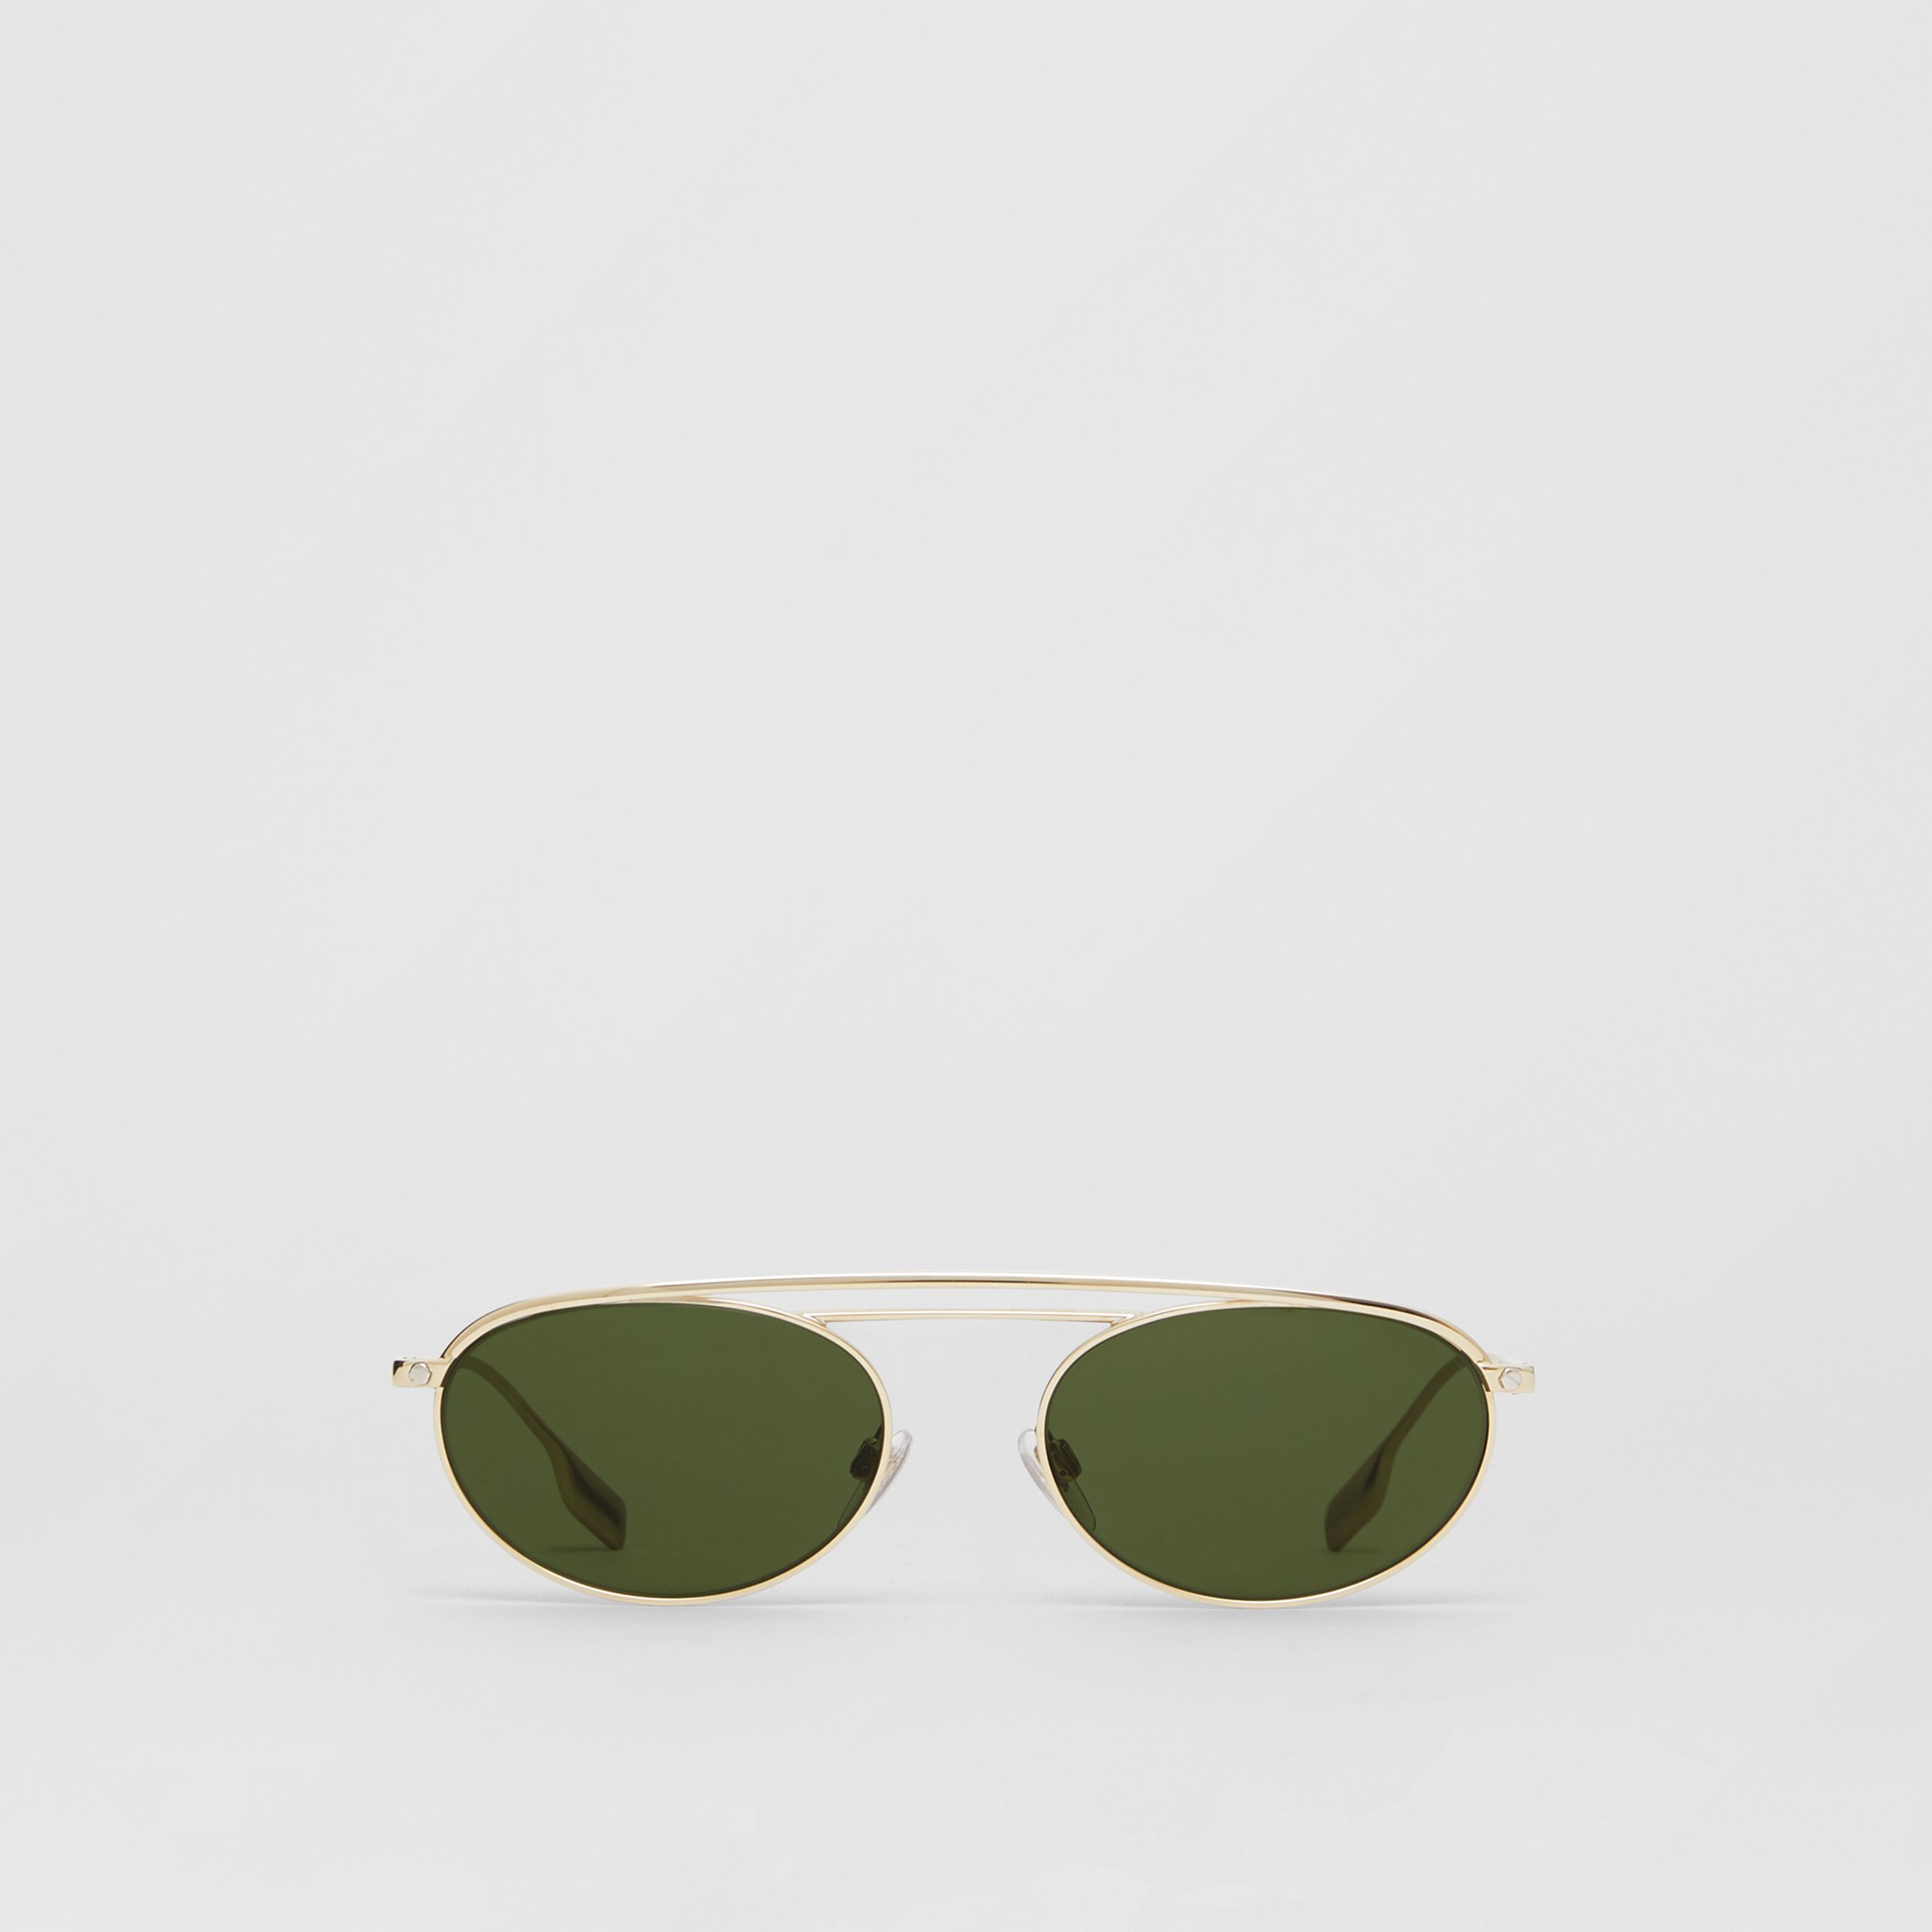 Oval Frame Sunglasses in Green - Women | Burberry - 1